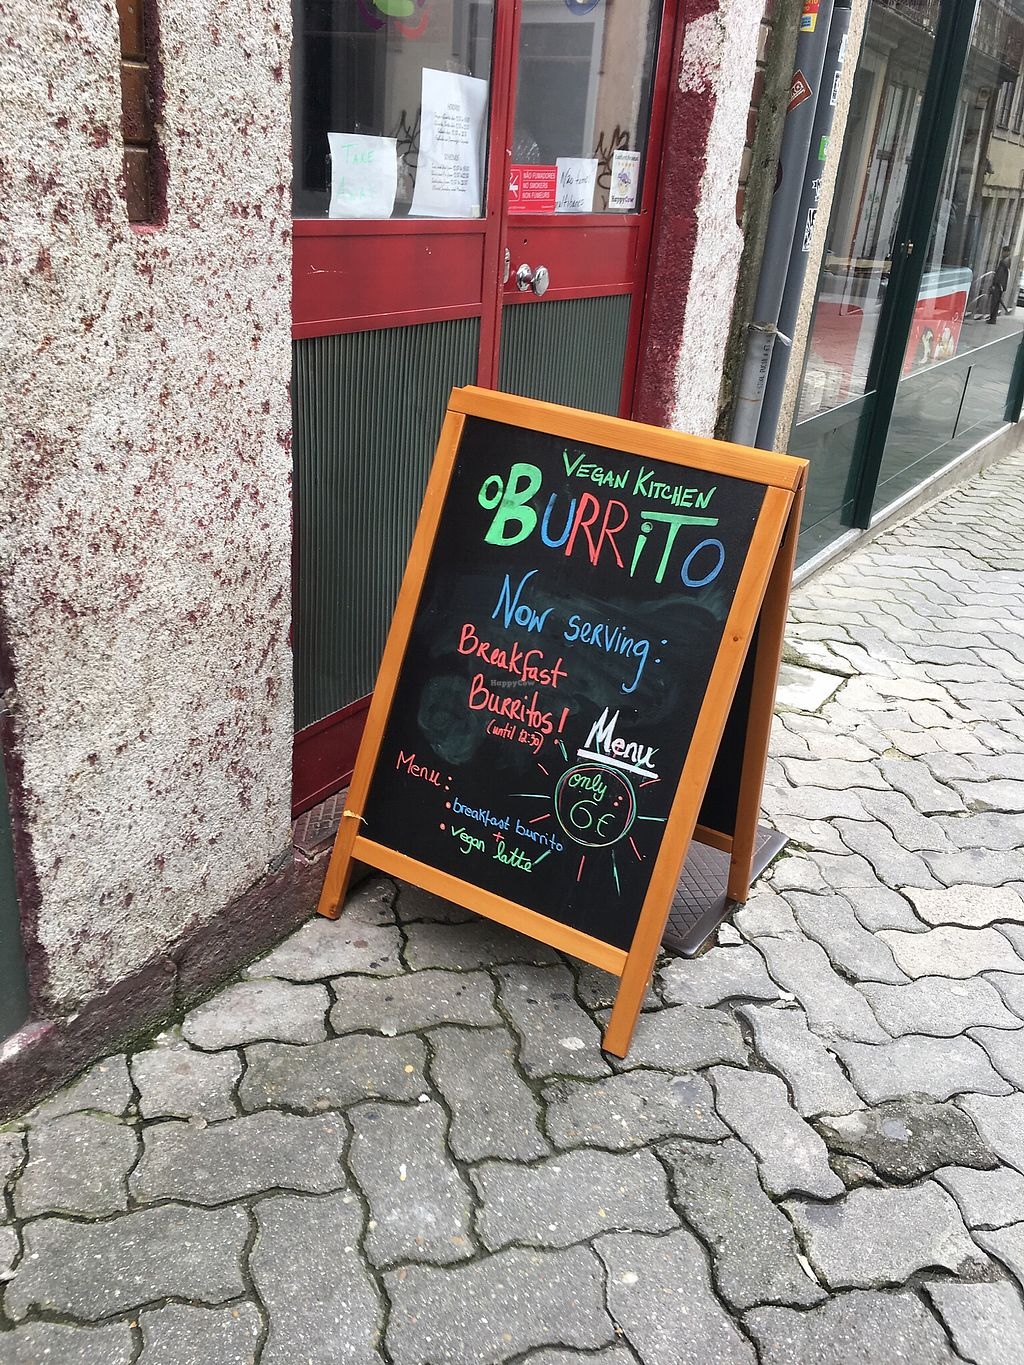 """Photo of O Burrito  by <a href=""""/members/profile/hack_man"""">hack_man</a> <br/>Board outside  <br/> April 13, 2018  - <a href='/contact/abuse/image/104857/385091'>Report</a>"""